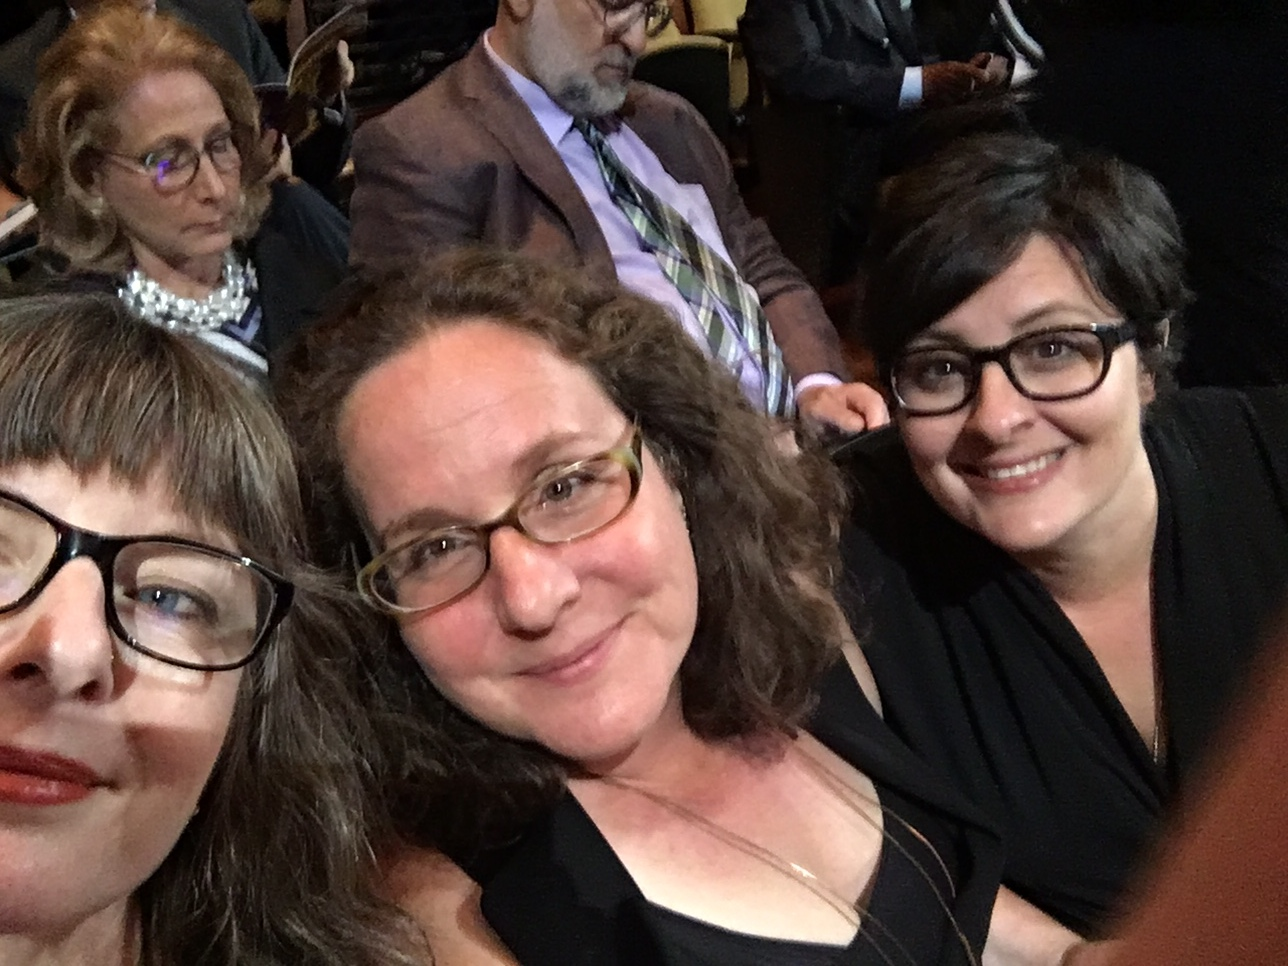 LESLIE SIMMER, ANNE DE MARE, and KIRSTEN KELLY IN THE AUDIENCE BEFORE THE WIN!